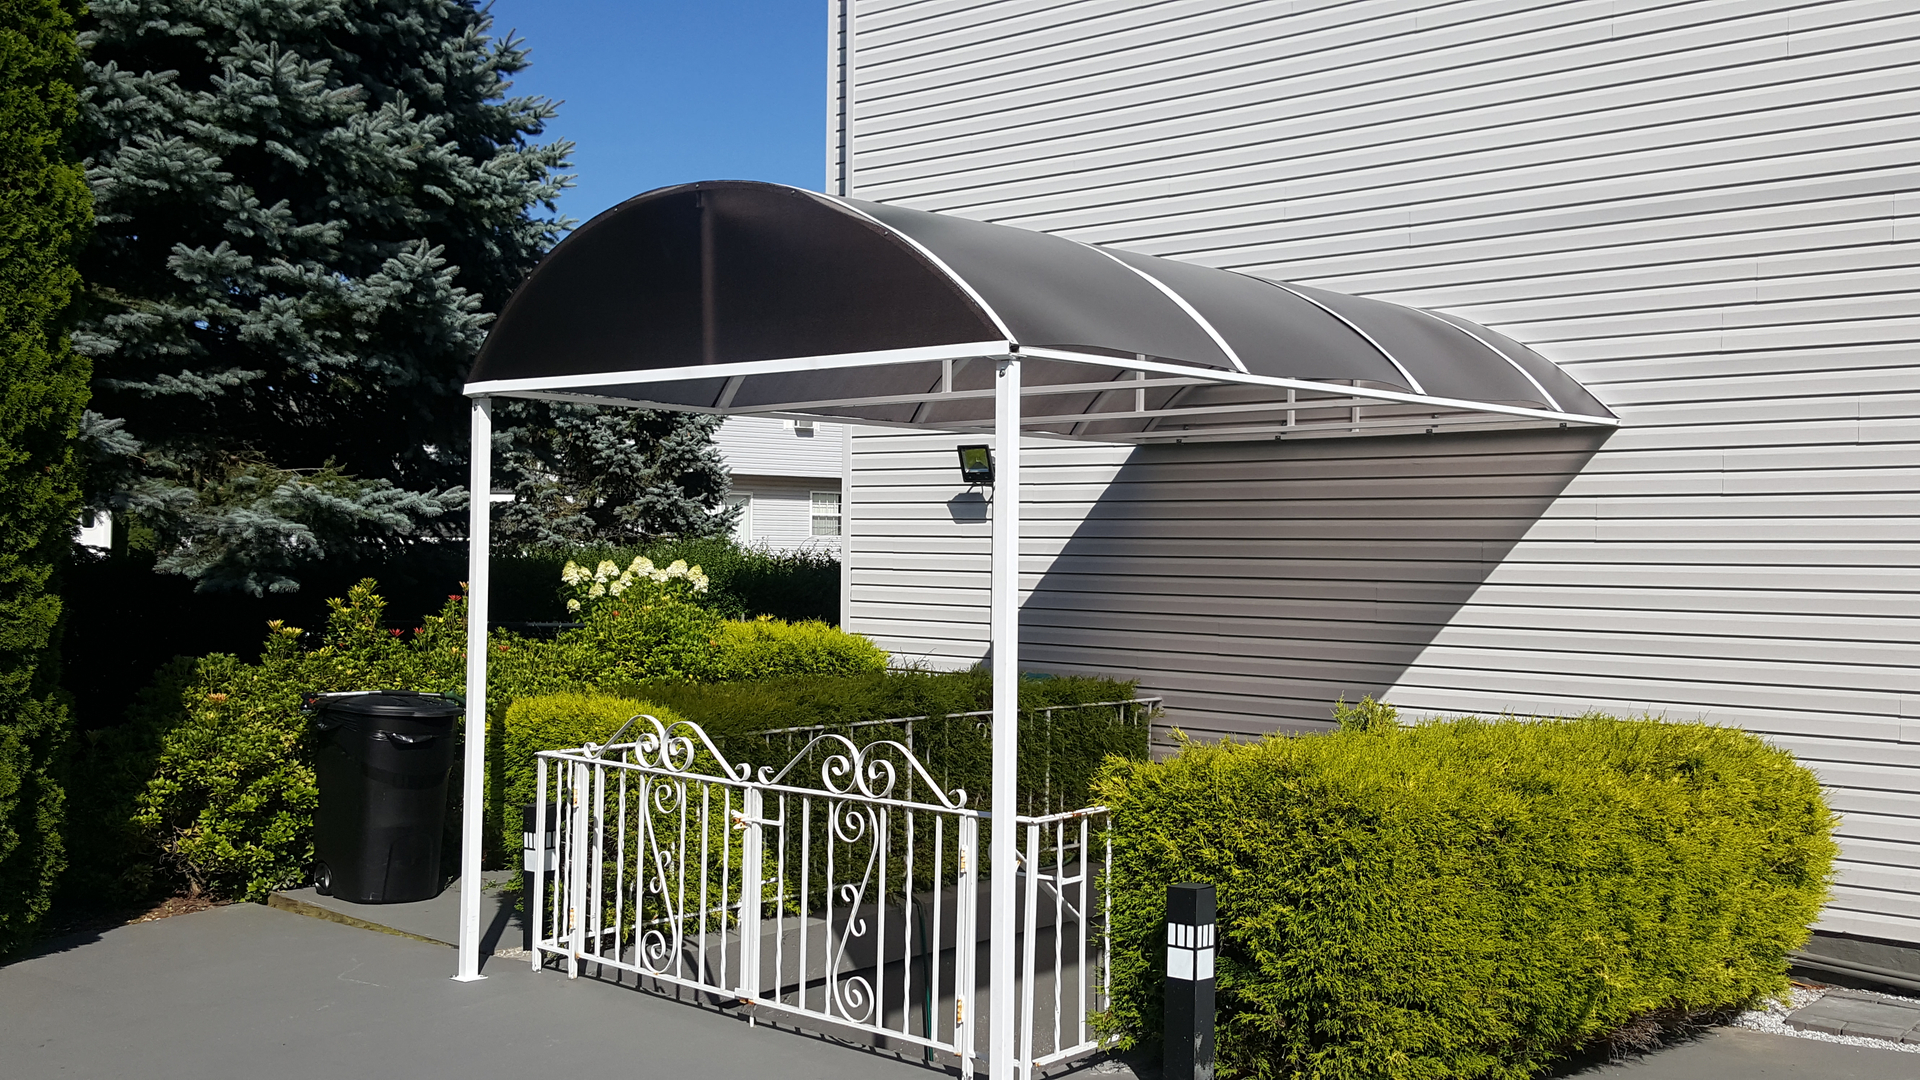 ready the new pin awning nhawning awnings long for island that summer get haven